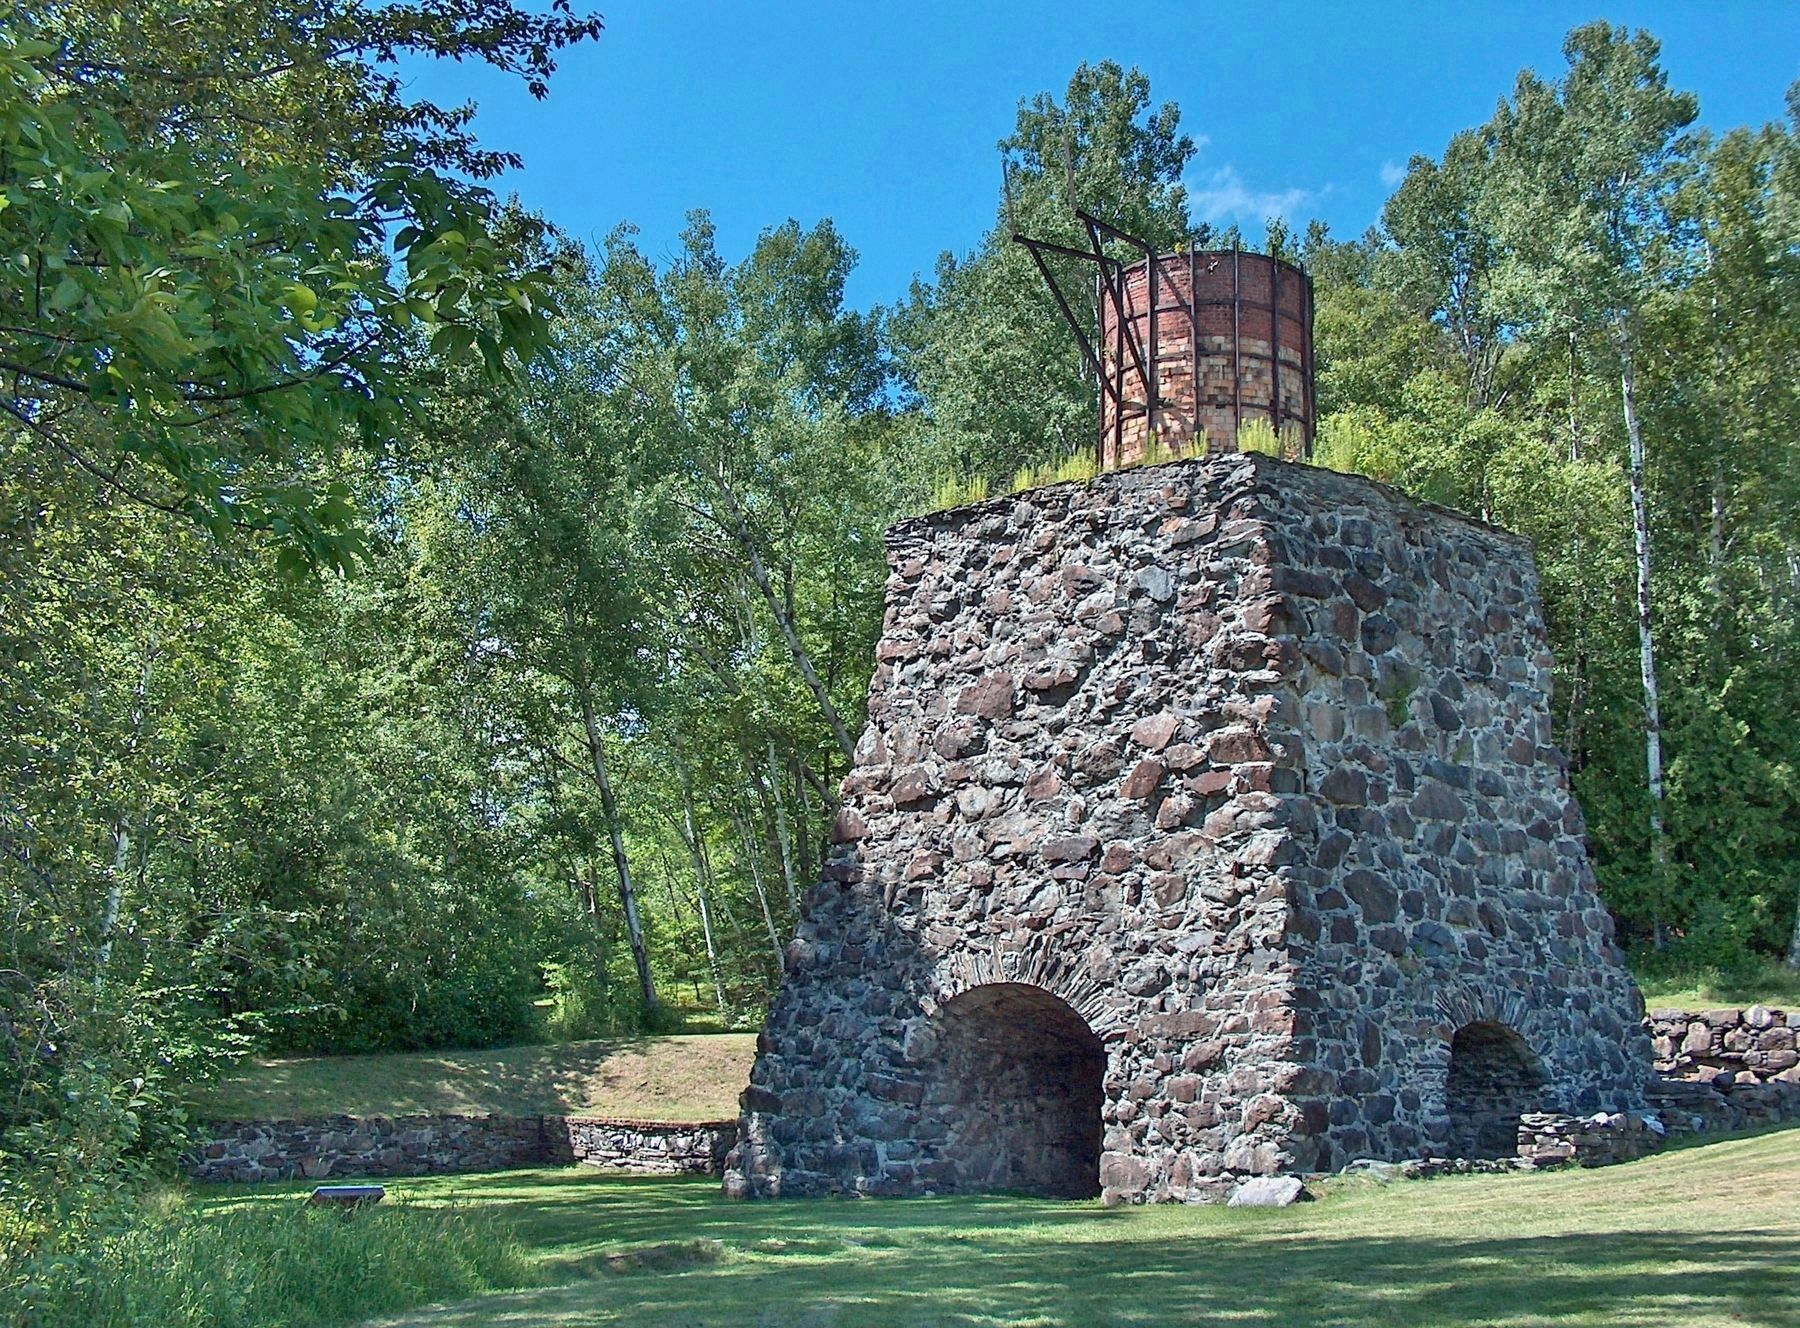 Katahdin Iron Works Furnace Ruins (<b><i>marker visible left of furnace ruins</b></i>) image, Touch for more information